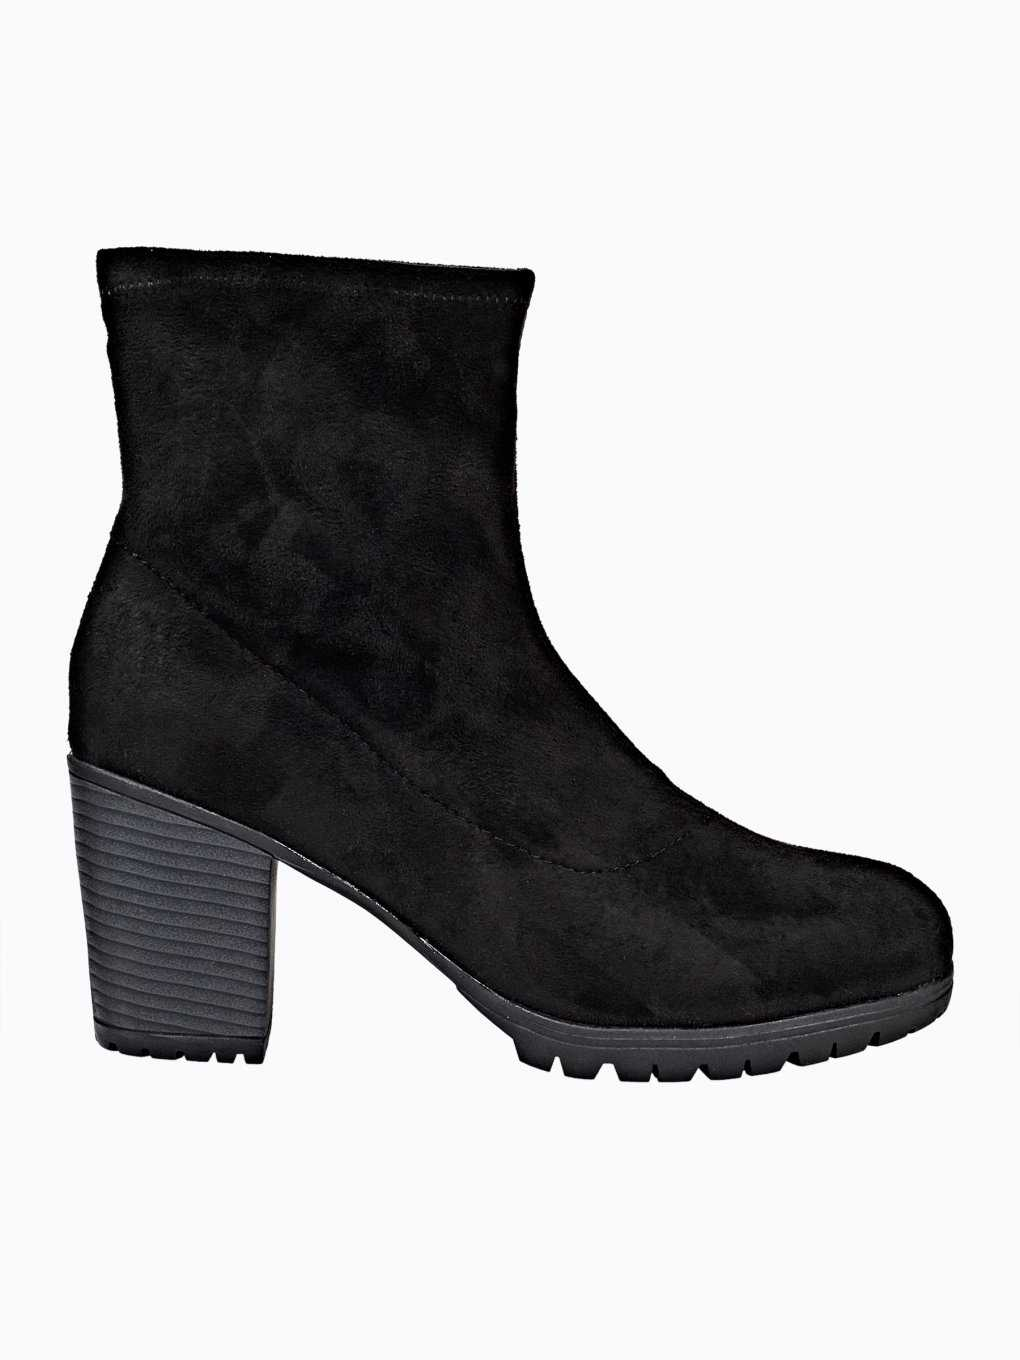 High heel sock ankle boots with track sole